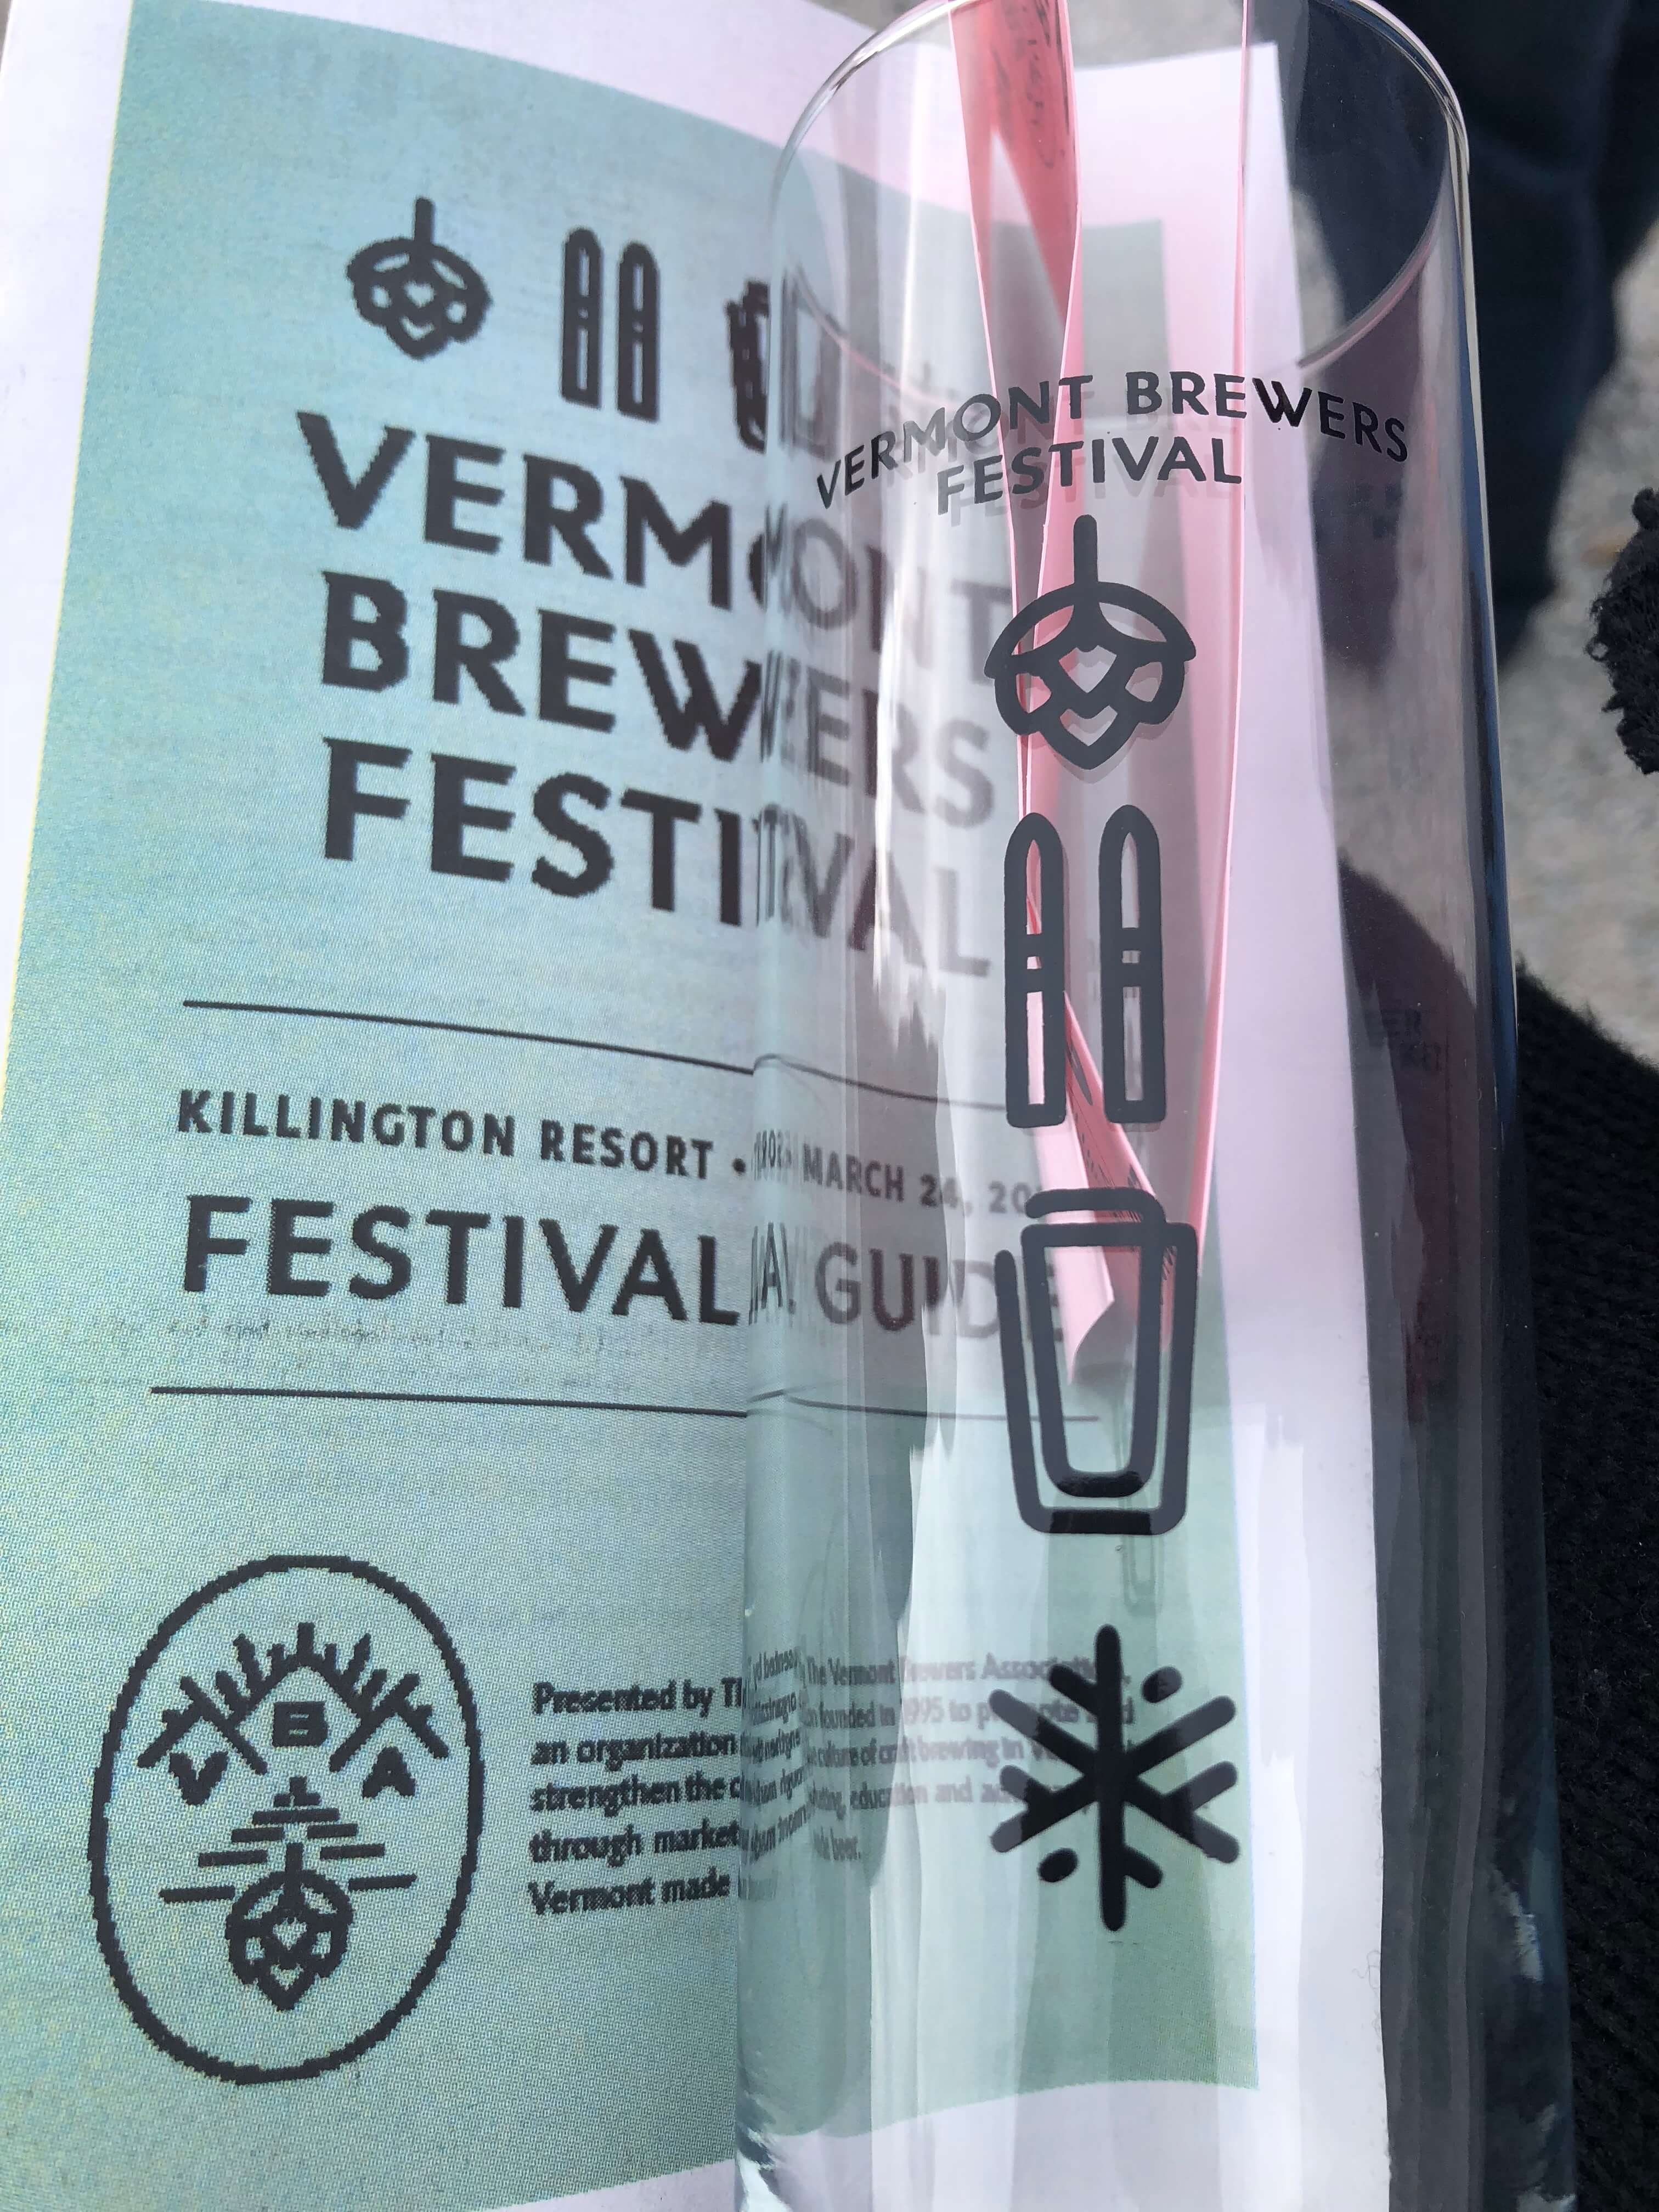 Vermont Brewers Festival guide and beers